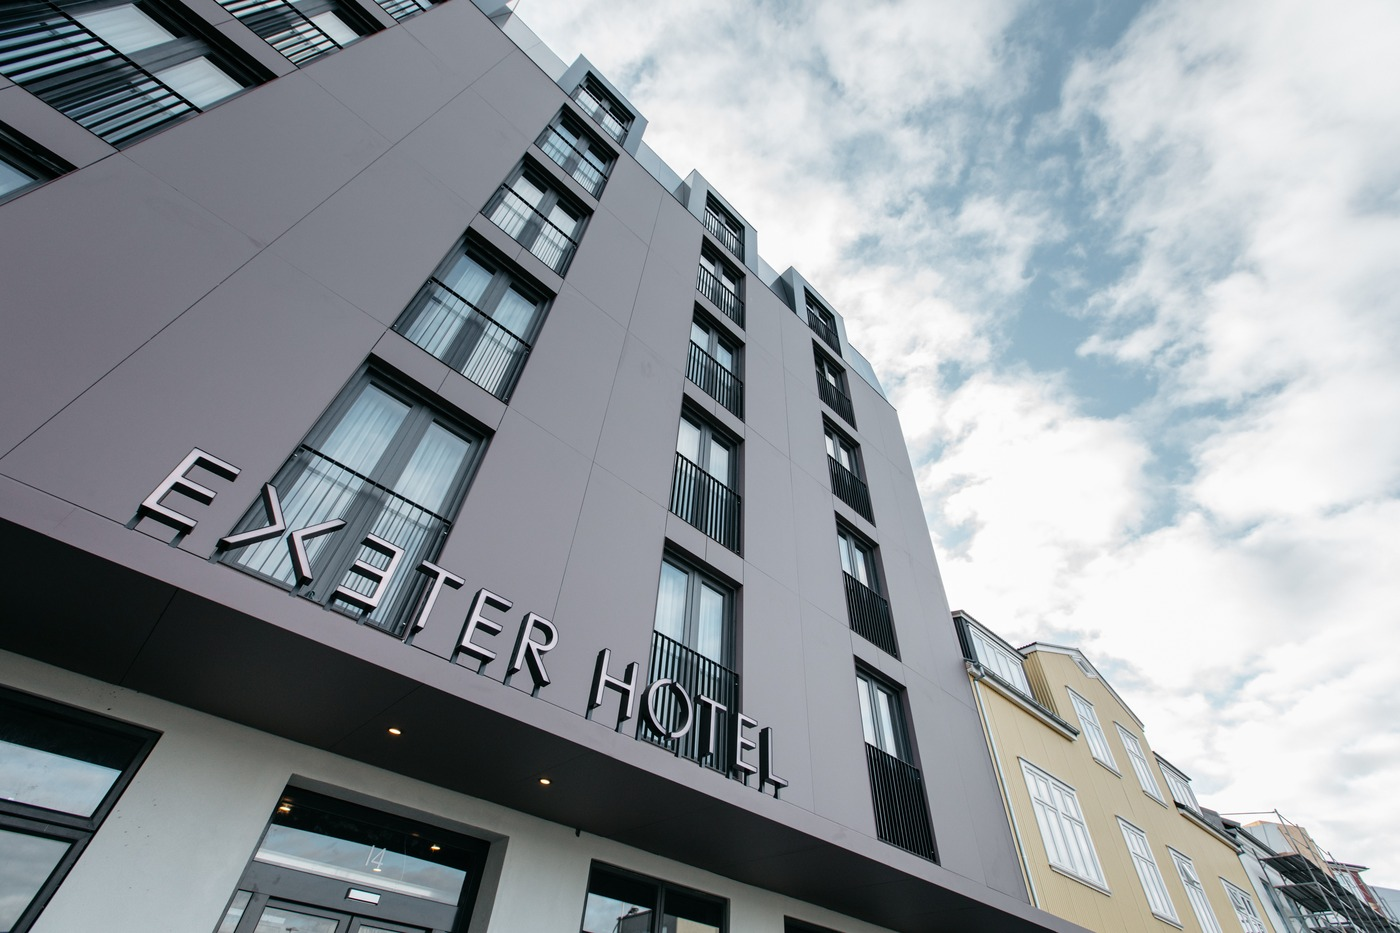 The Exeter Hotel is a modern hotel in downtown Reykjavik.